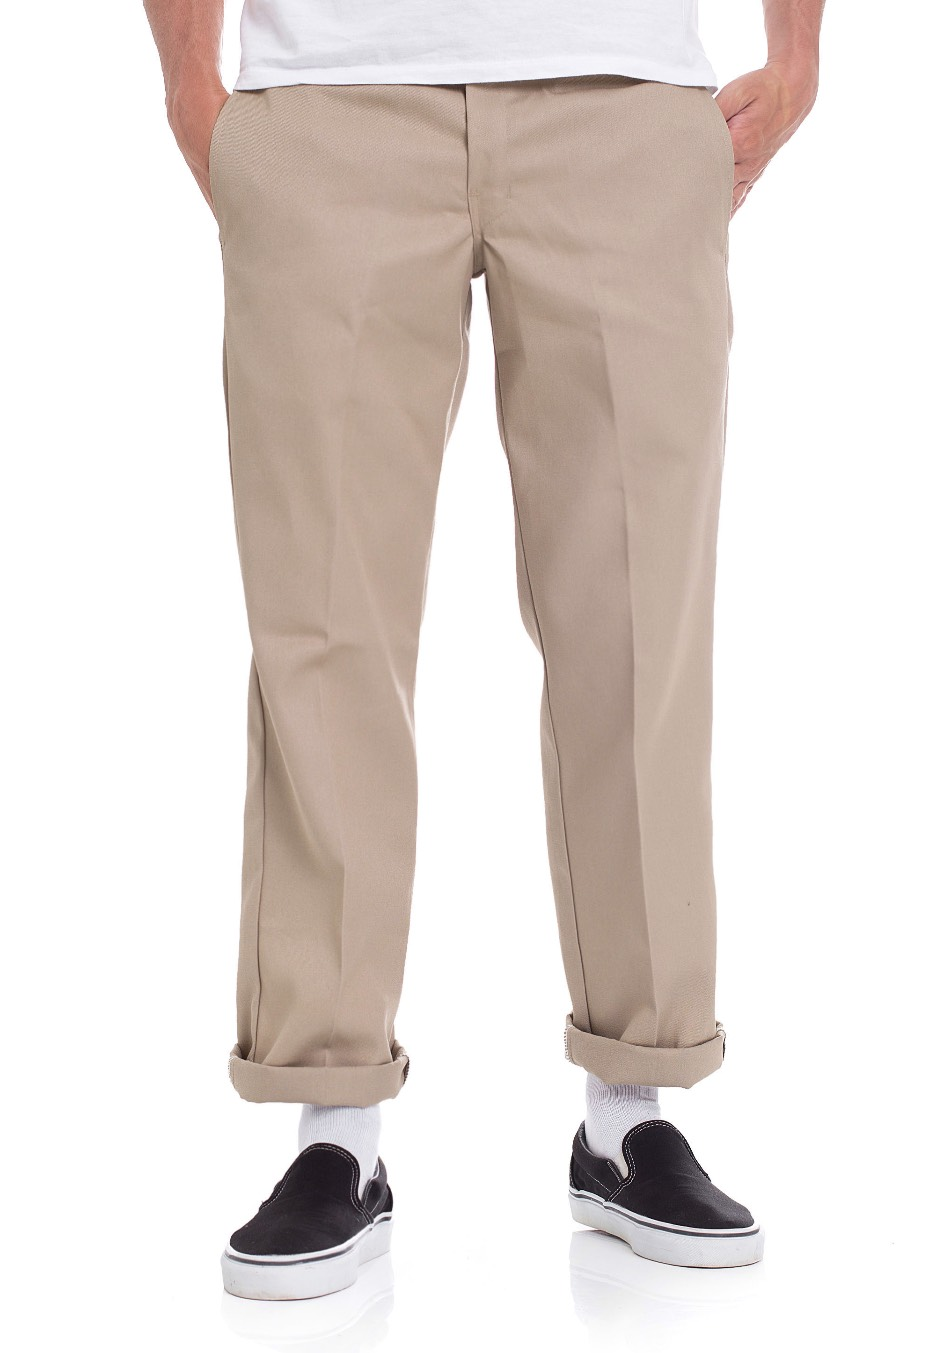 69d04d6ffe1 Dickies - Slim Straight Work 873 Khaki - Pants - Impericon.com Worldwide